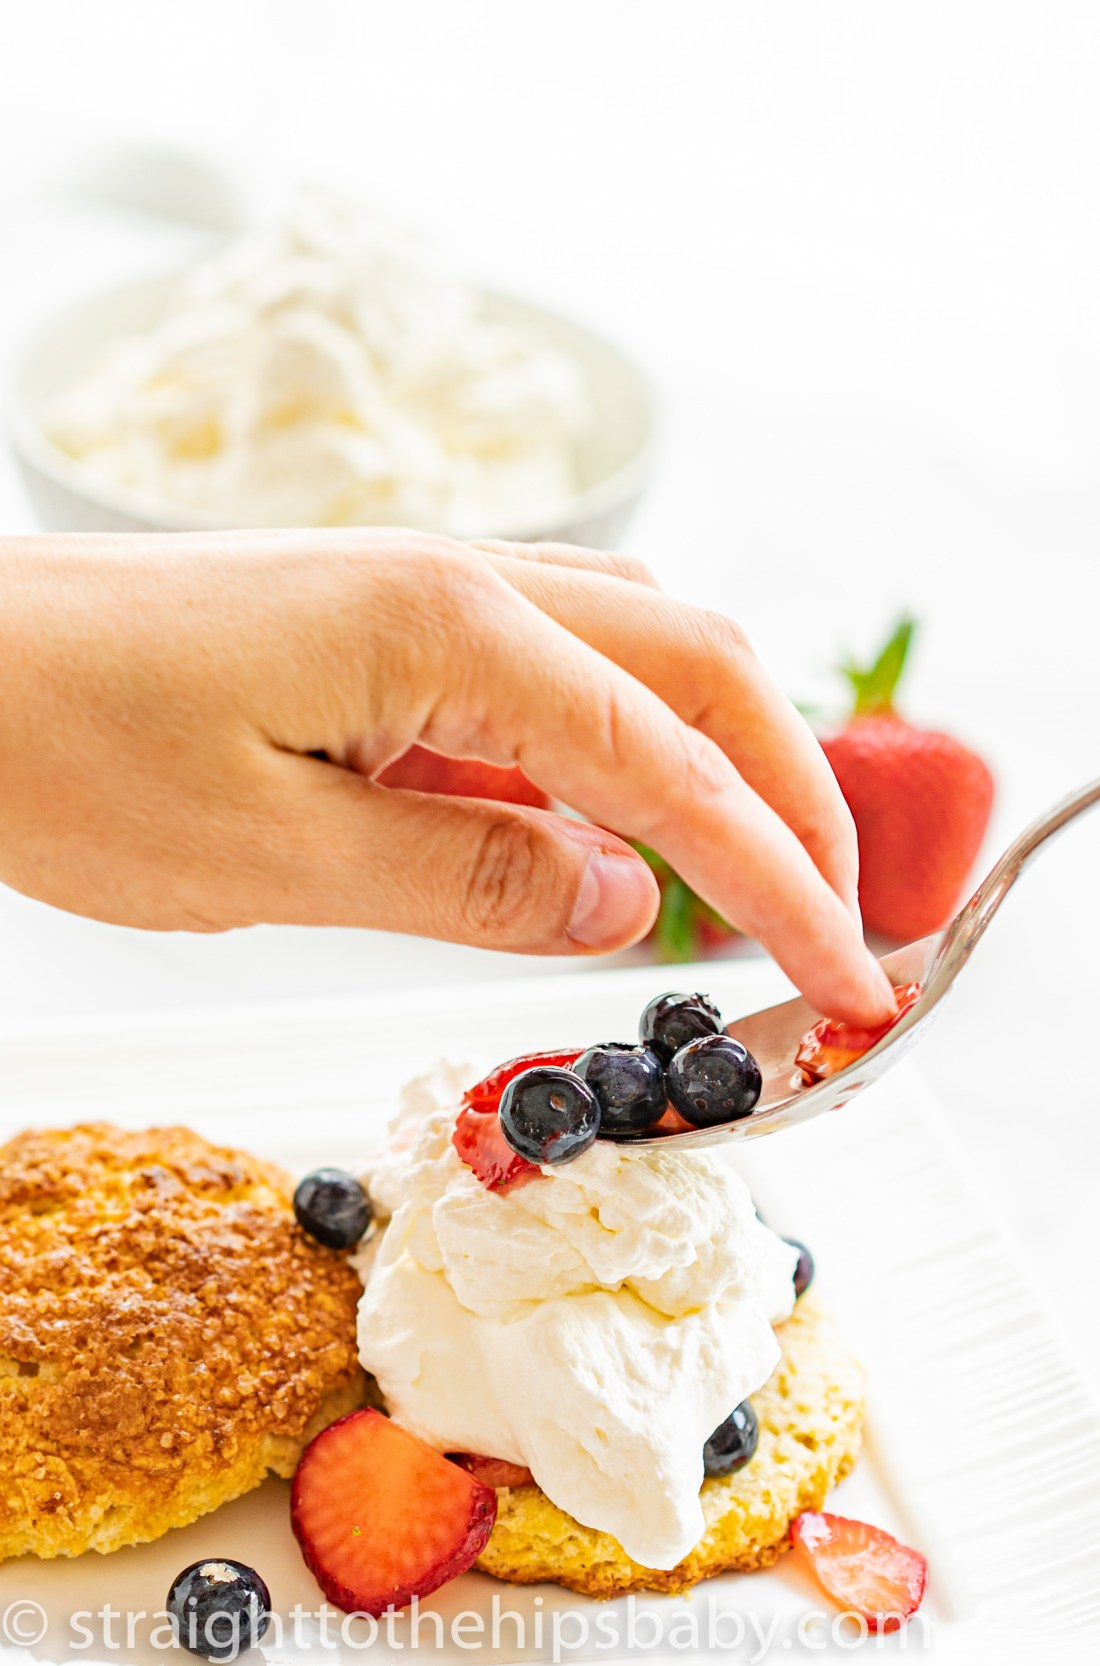 a woman's hand guiding sugared berries onto of a whipped cream coated biscuit